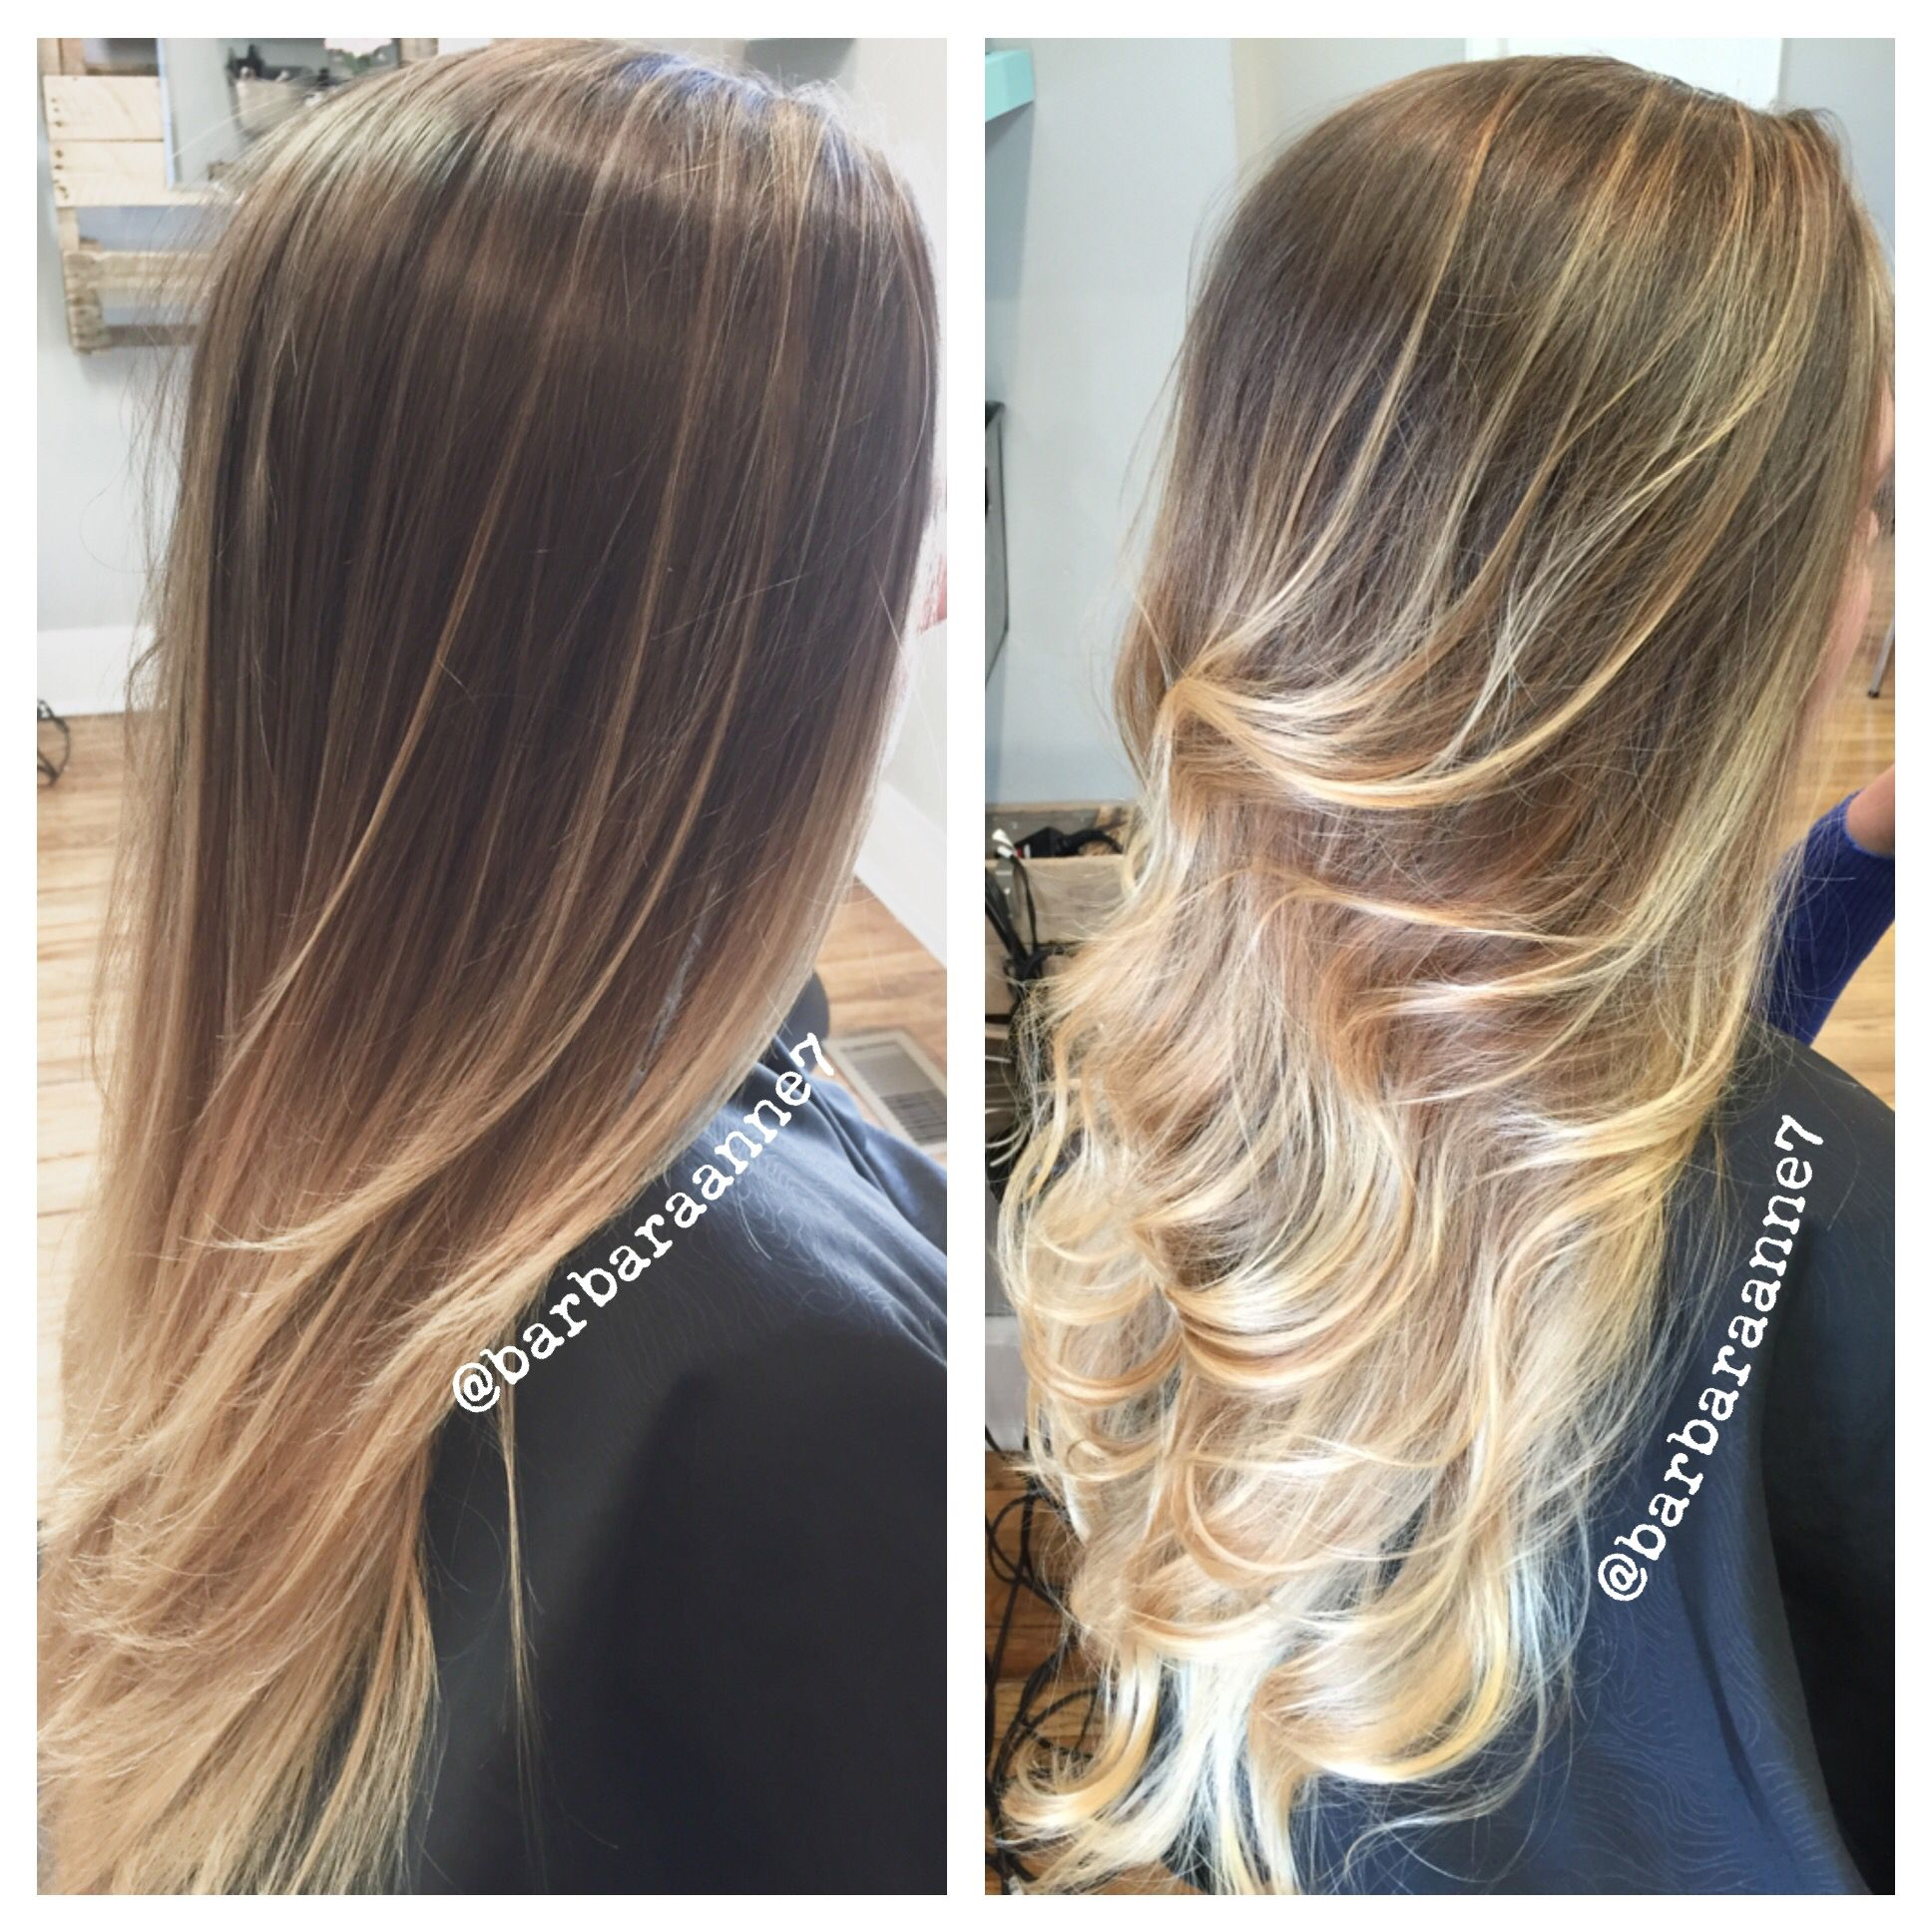 Balayage Ombré, straight \u0026 curled, long hair, blonde hair